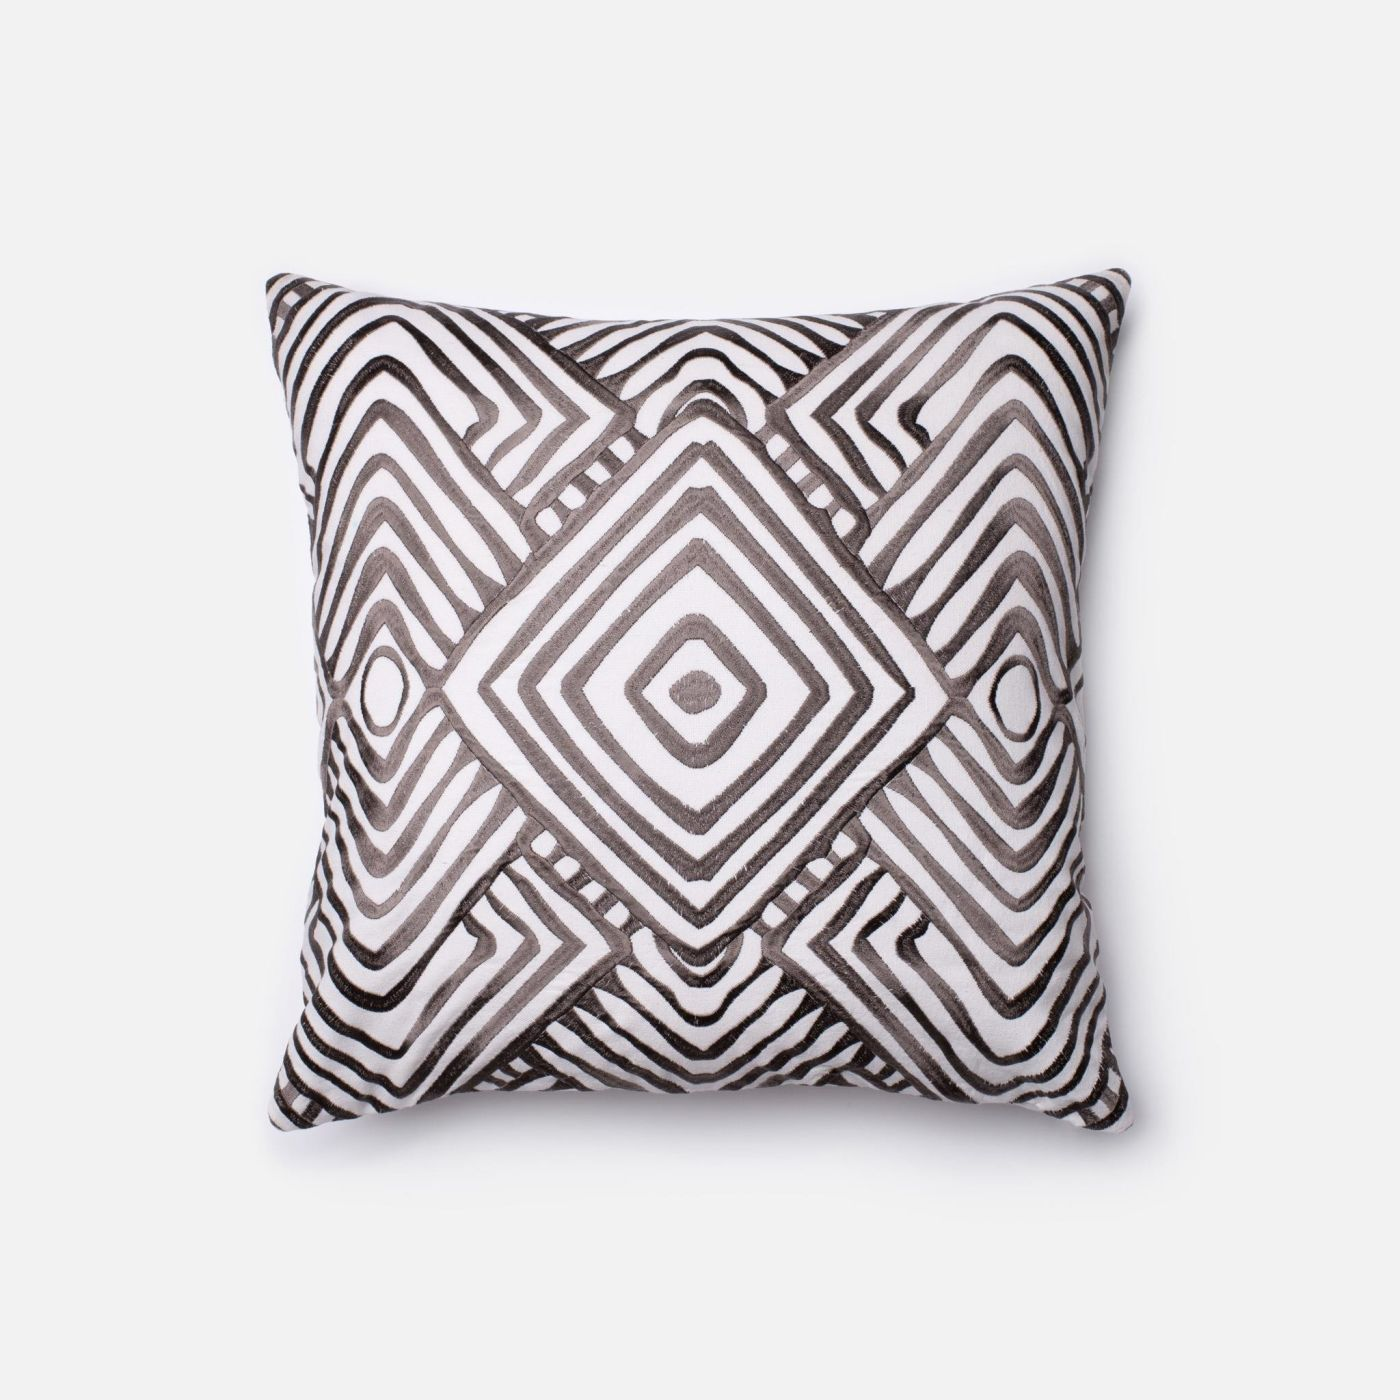 Throw Pillows Charcoal : Loloi Rugs Loloi White / Charcoal Decorative Throw Pillow (P0206) DSETP0206WHCCPIL1. Only $69.00 ...